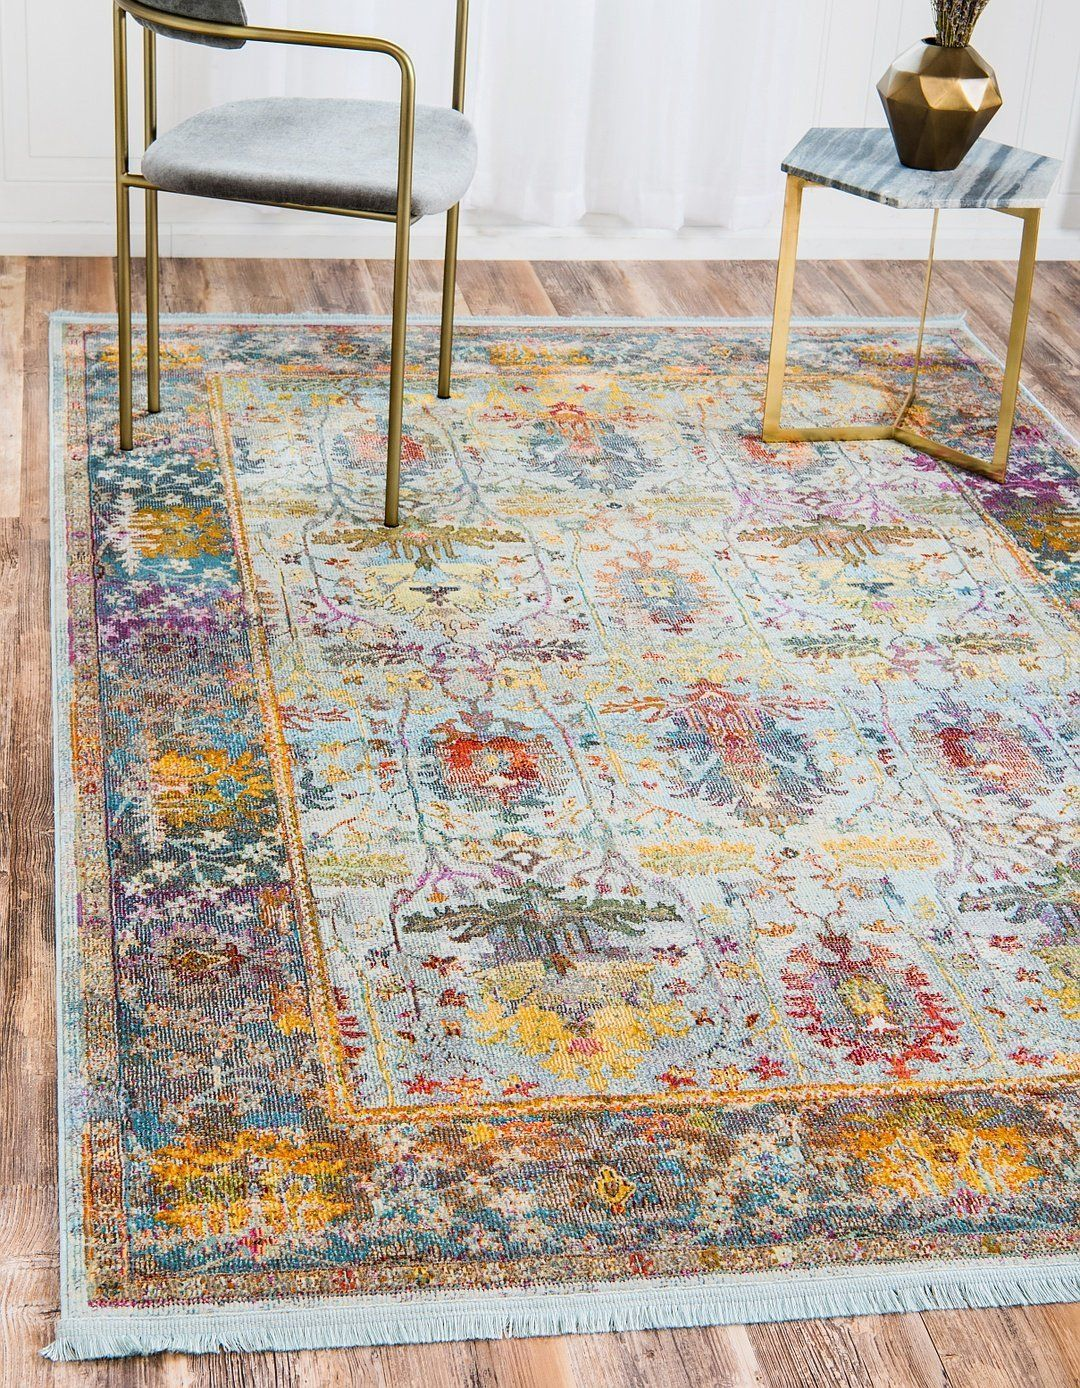 A2z Rug Light Blue 8 4 X 10 Feet St Tropez Collection Traditional And Modern Area Rugs And Carpet Light Blue Area Rug Modern Area Rugs Area Rugs